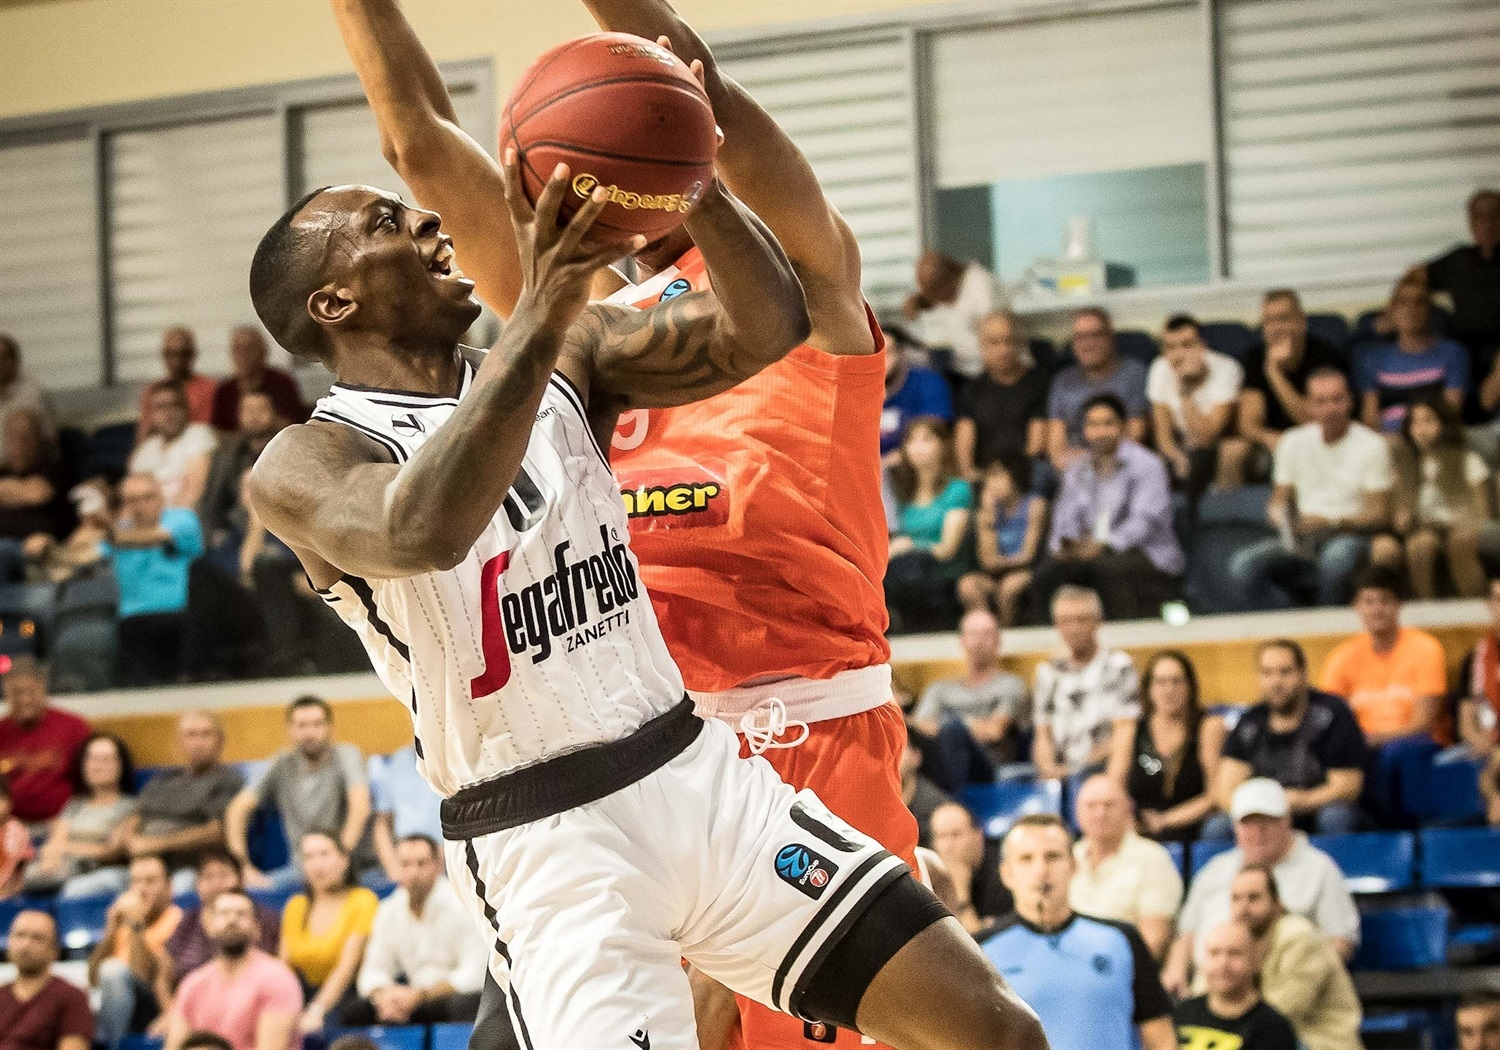 Frank Gaines - Segafredo Virtus Bologna (photo Rishon) - EC19